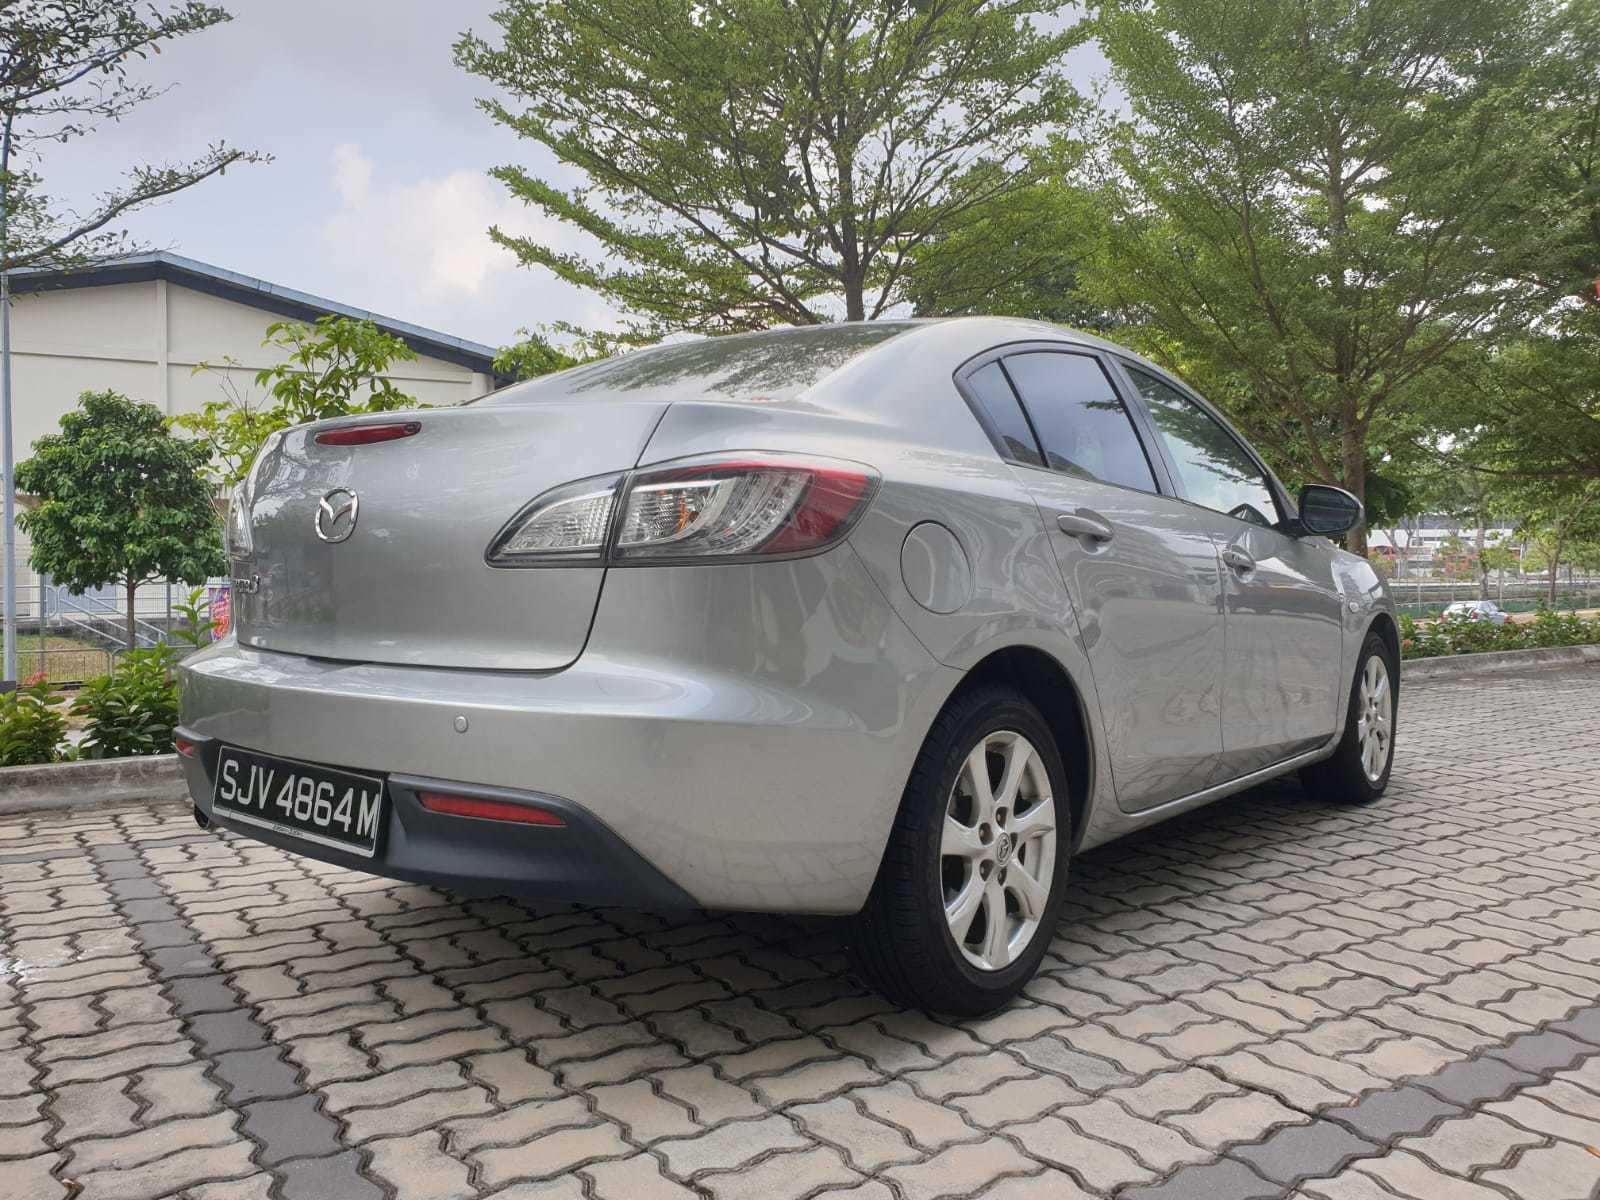 Mazda 3 - Many ranges of car to choose from, great condition!